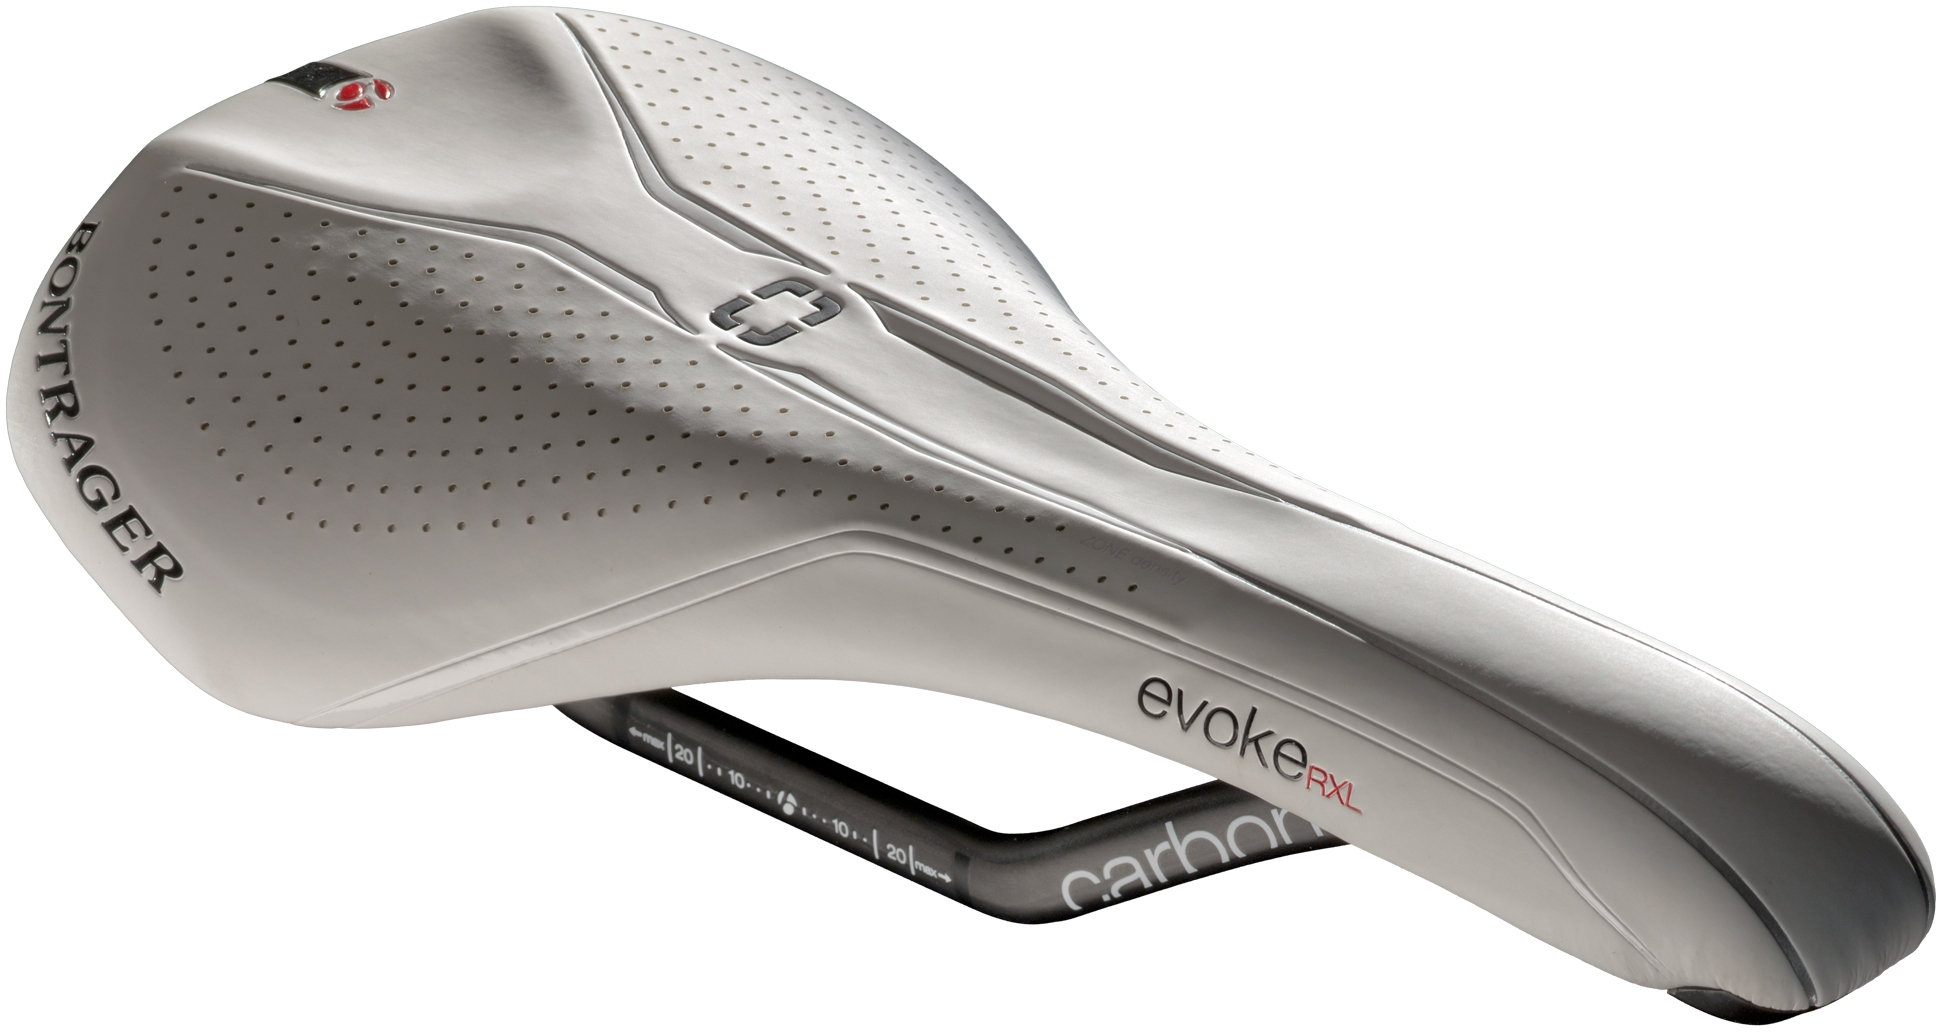 Saddle Bontrager Evoke Rxl Carbon 148 White